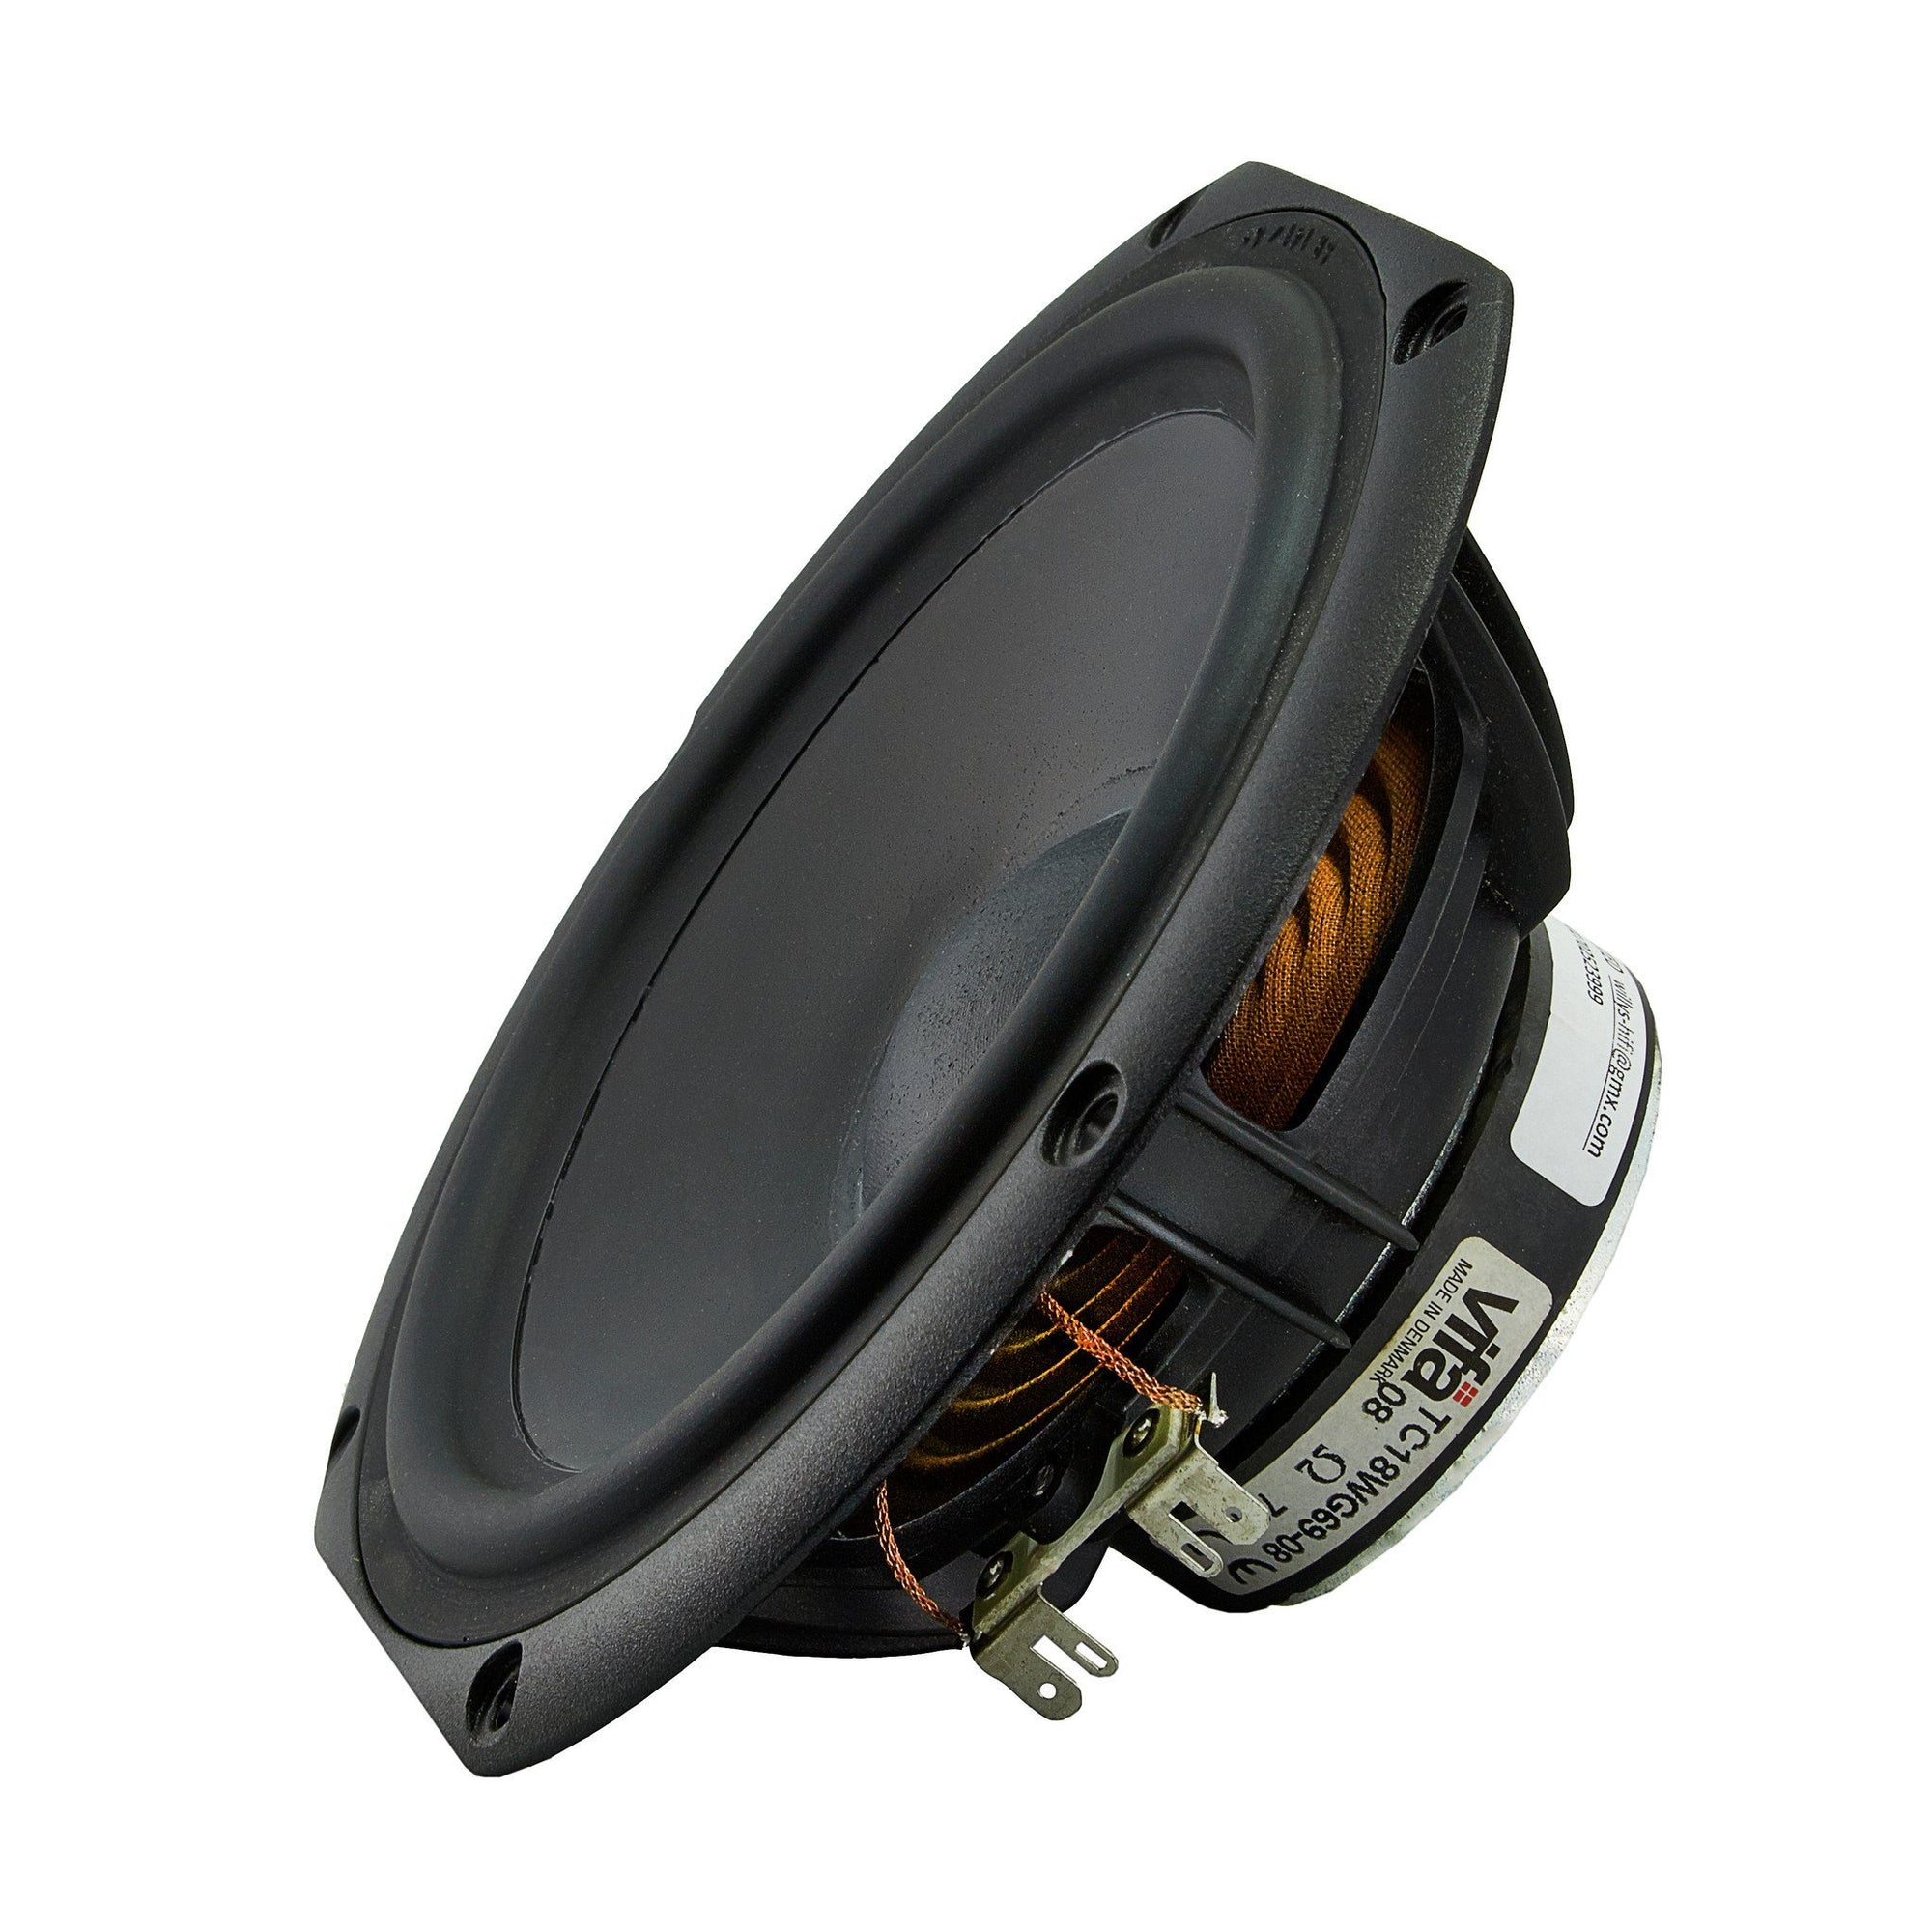 6-8 inch Bass / Midrange Speakers